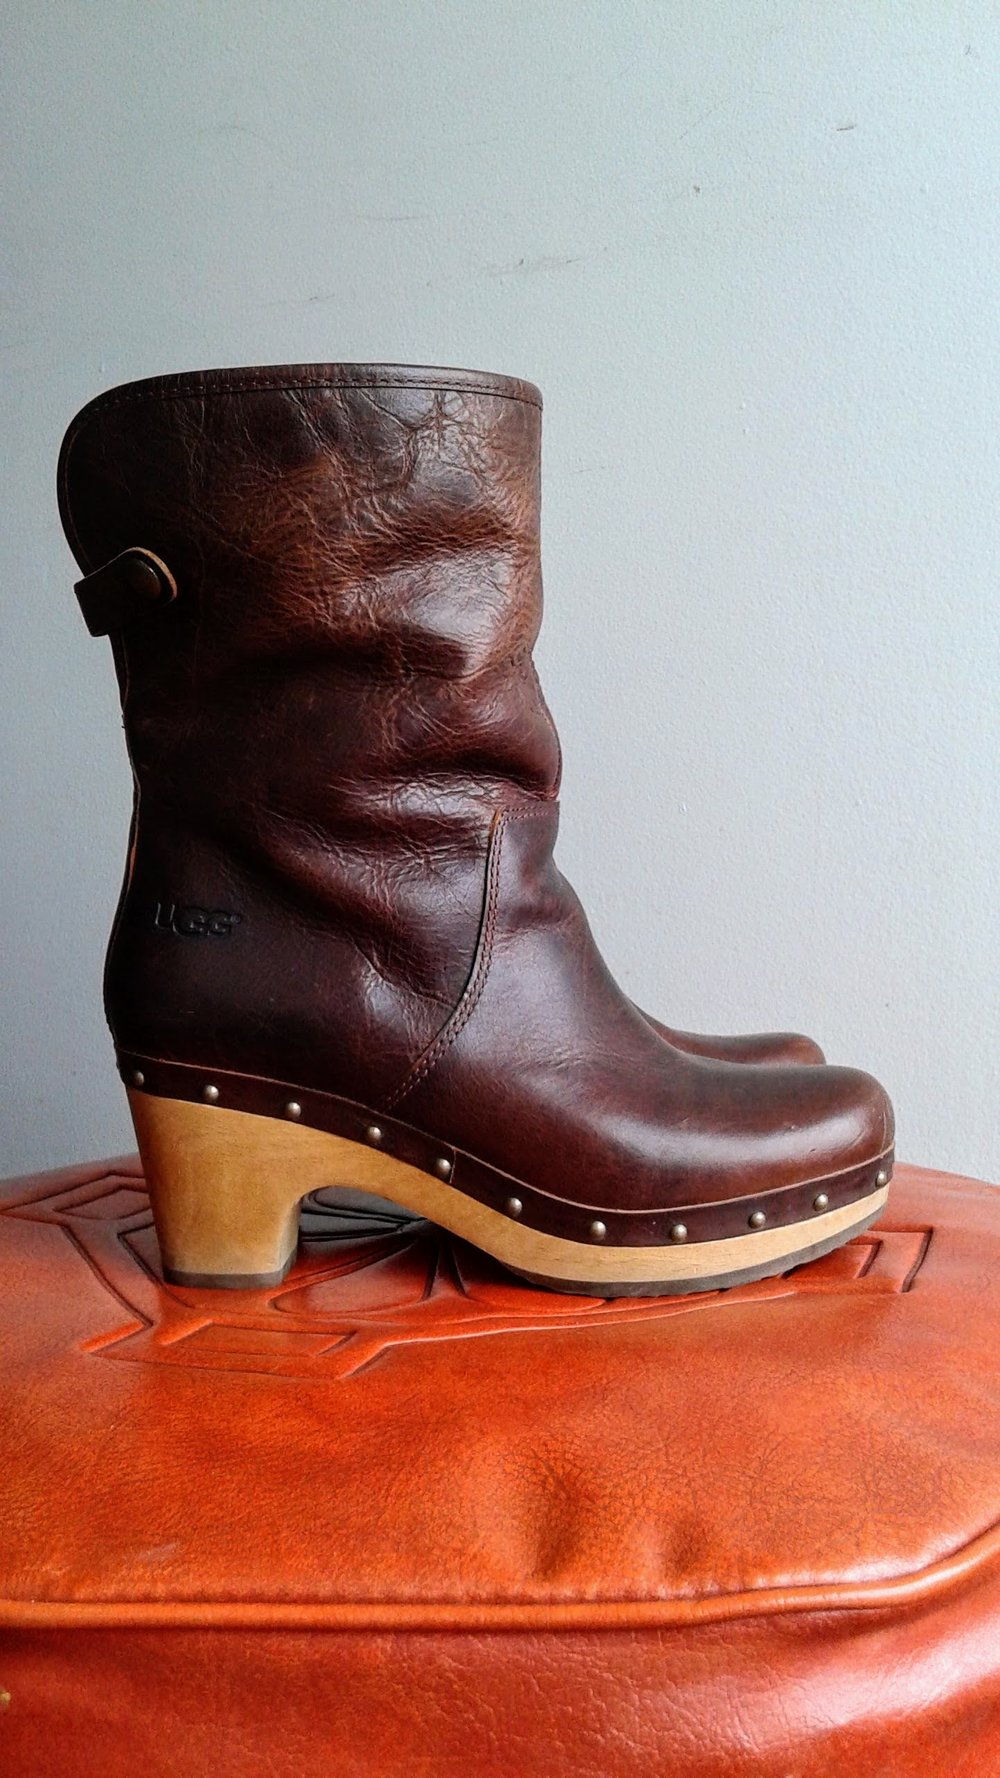 Ugg boots; S6, $85